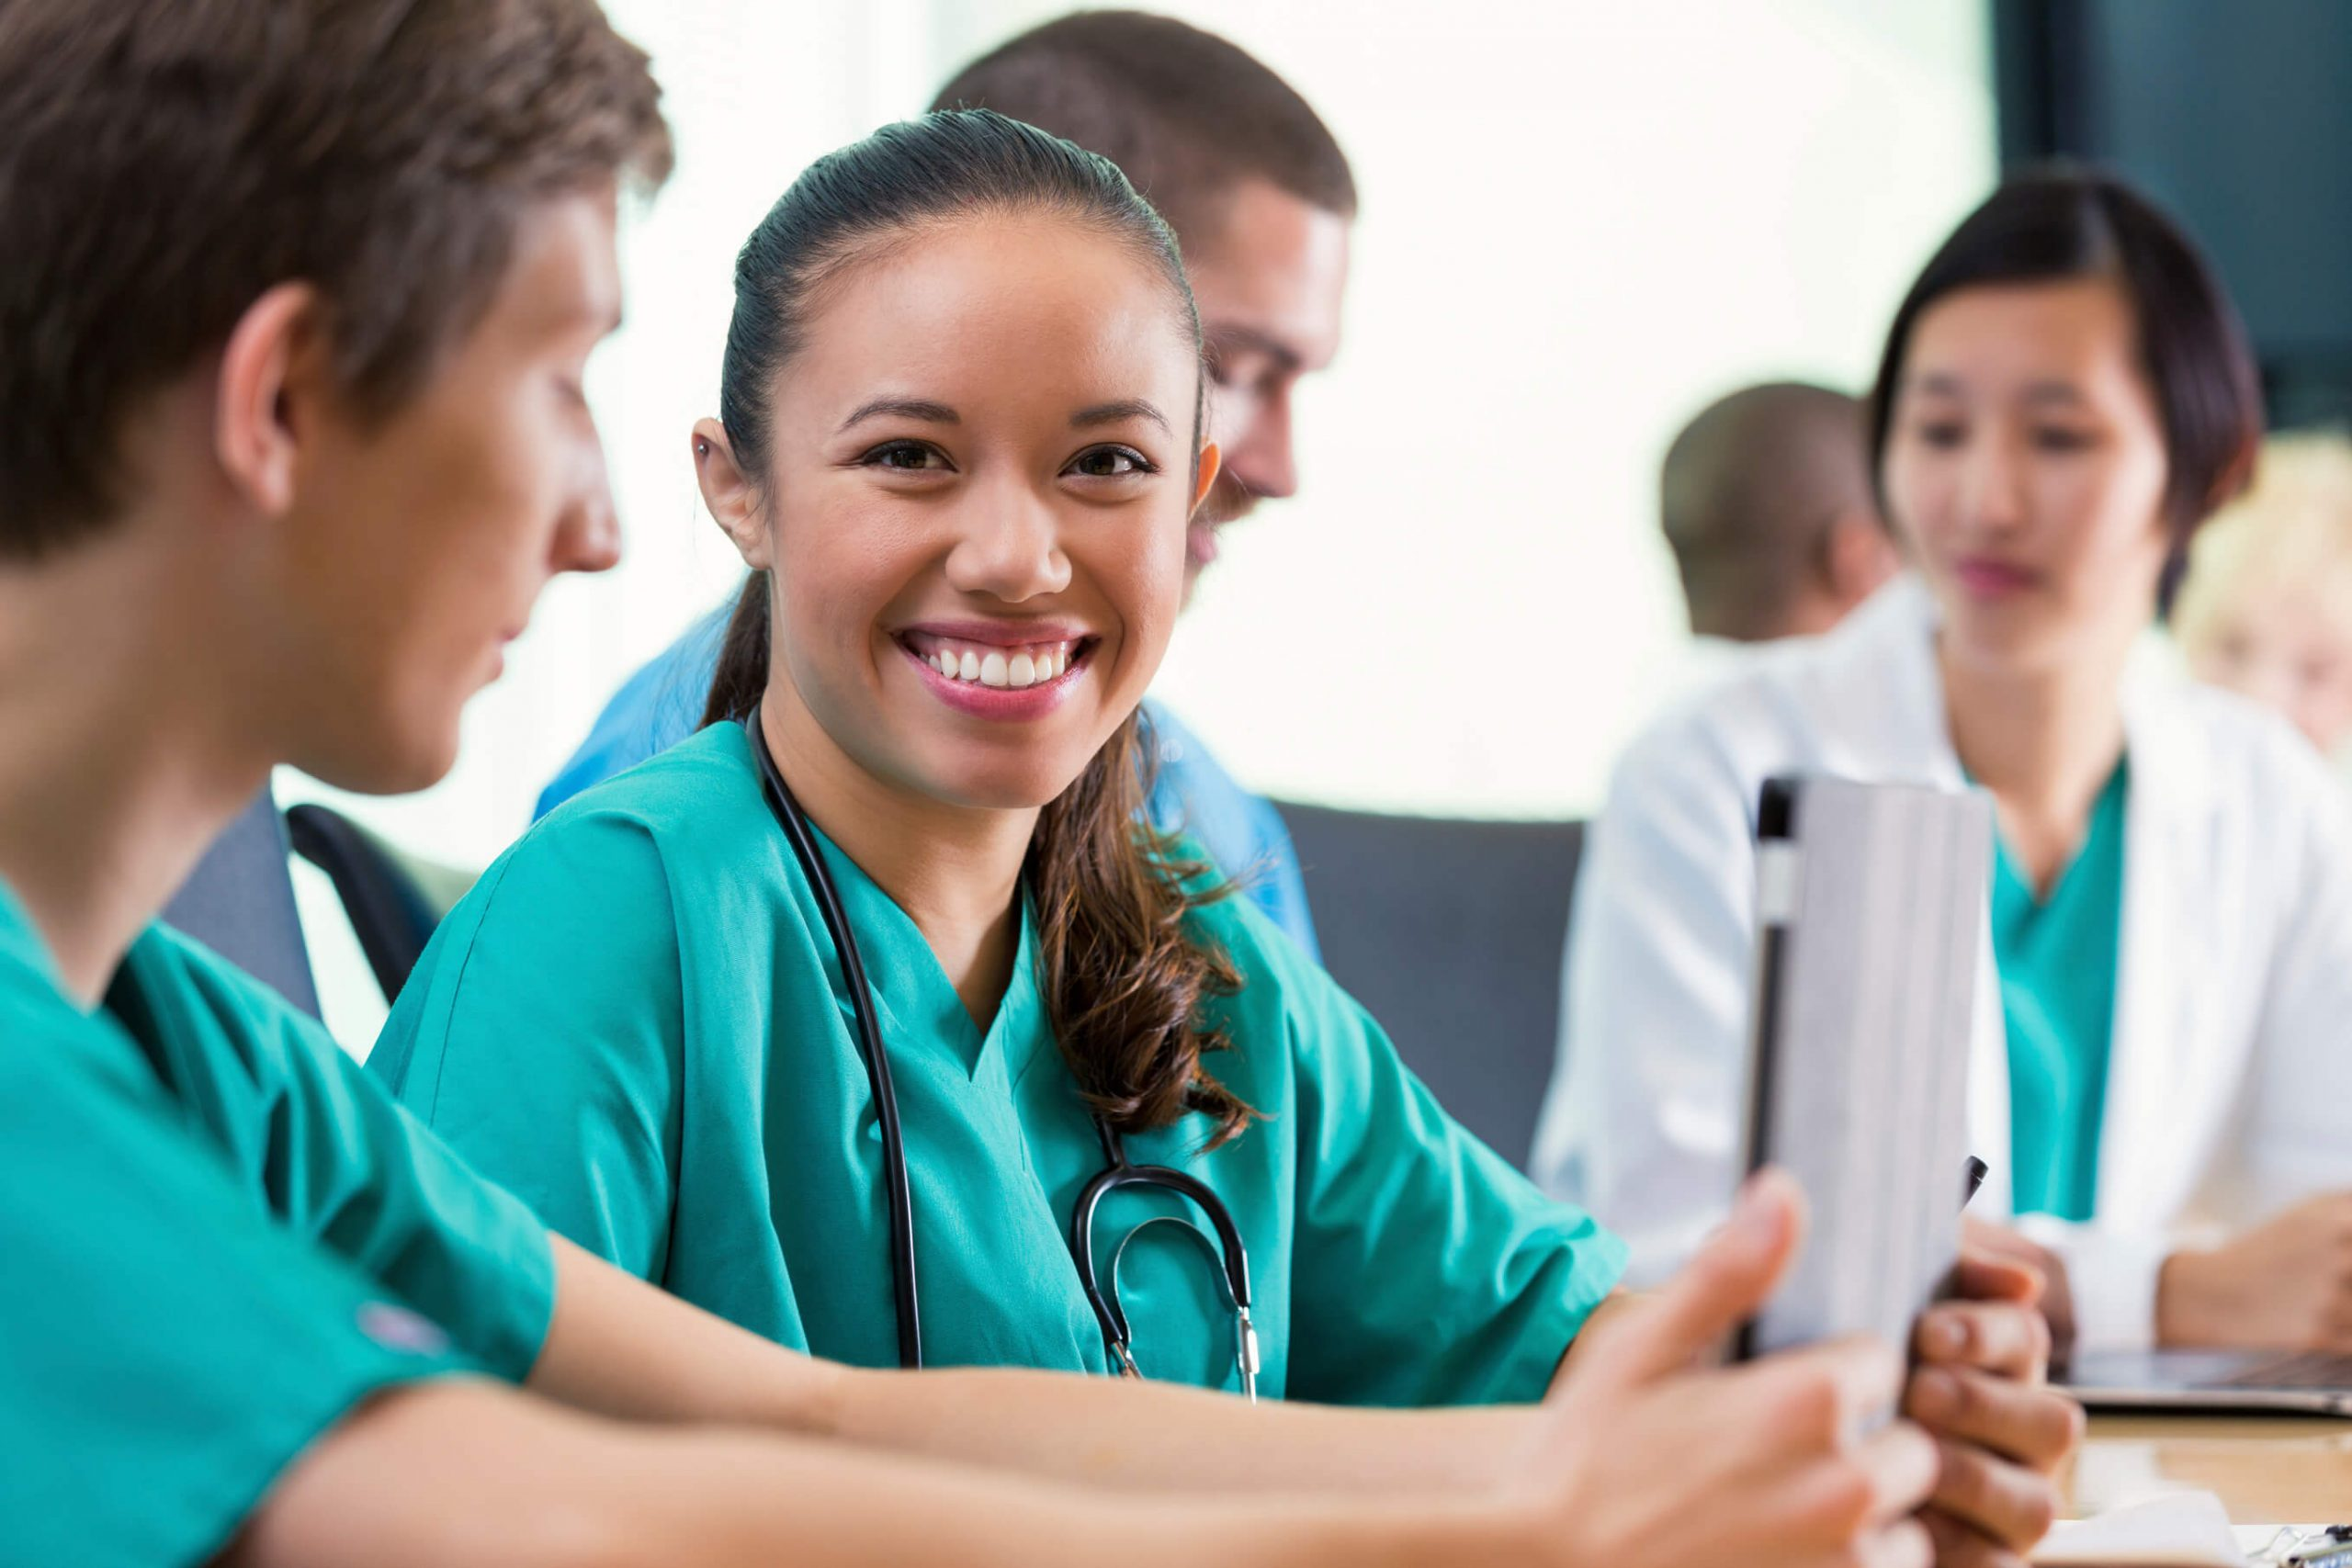 Health care professionals sitting at table with young female professional looking at you